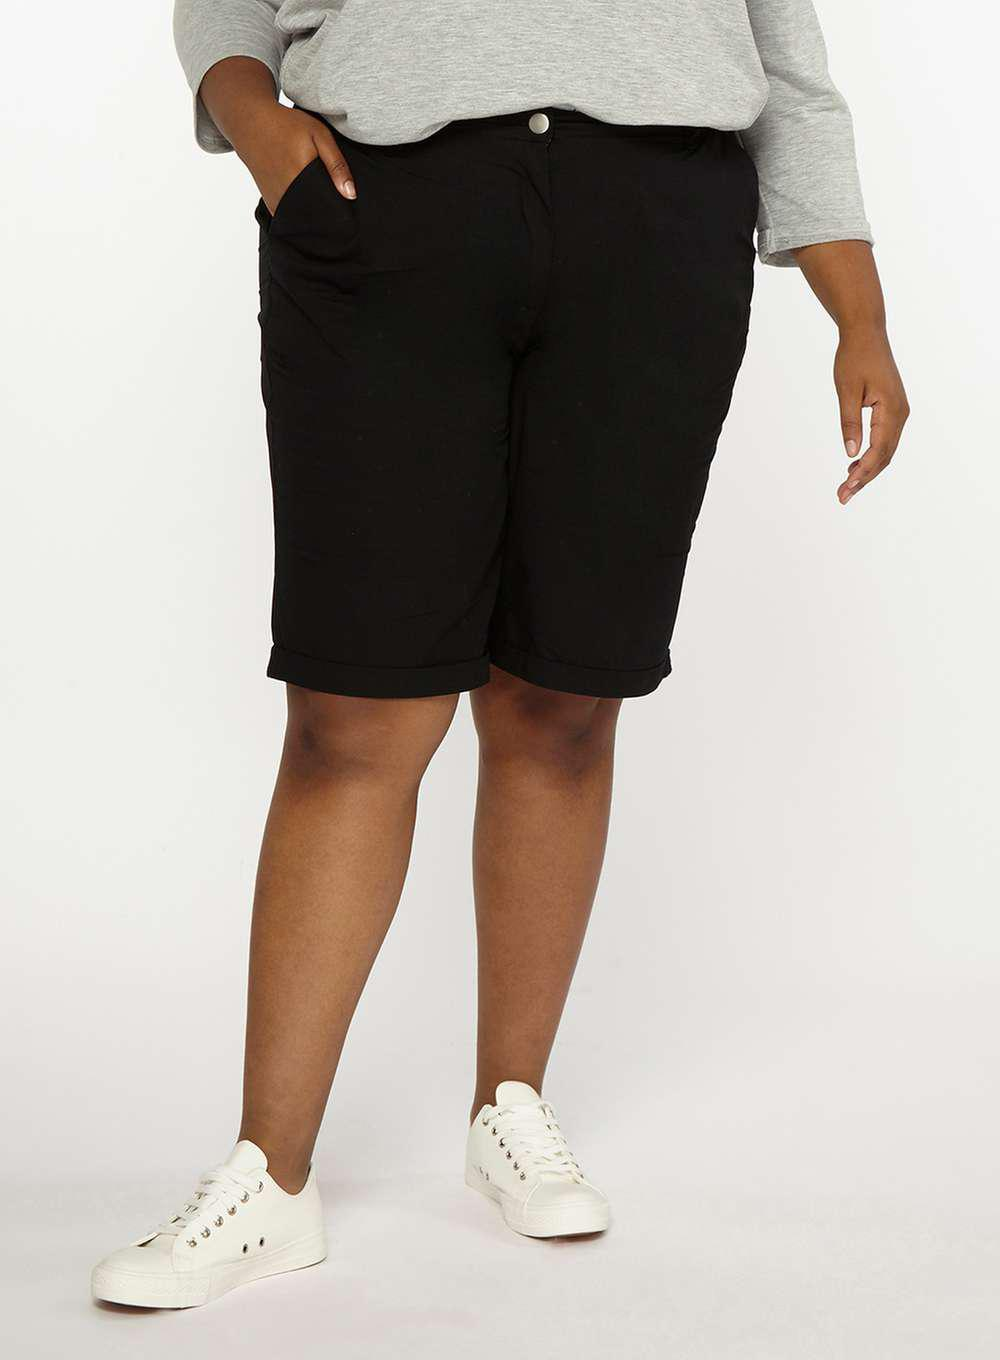 Curve Lyst Perkins Knee Dorothy Dp Shorts Black Poplin In FTlK1Jc